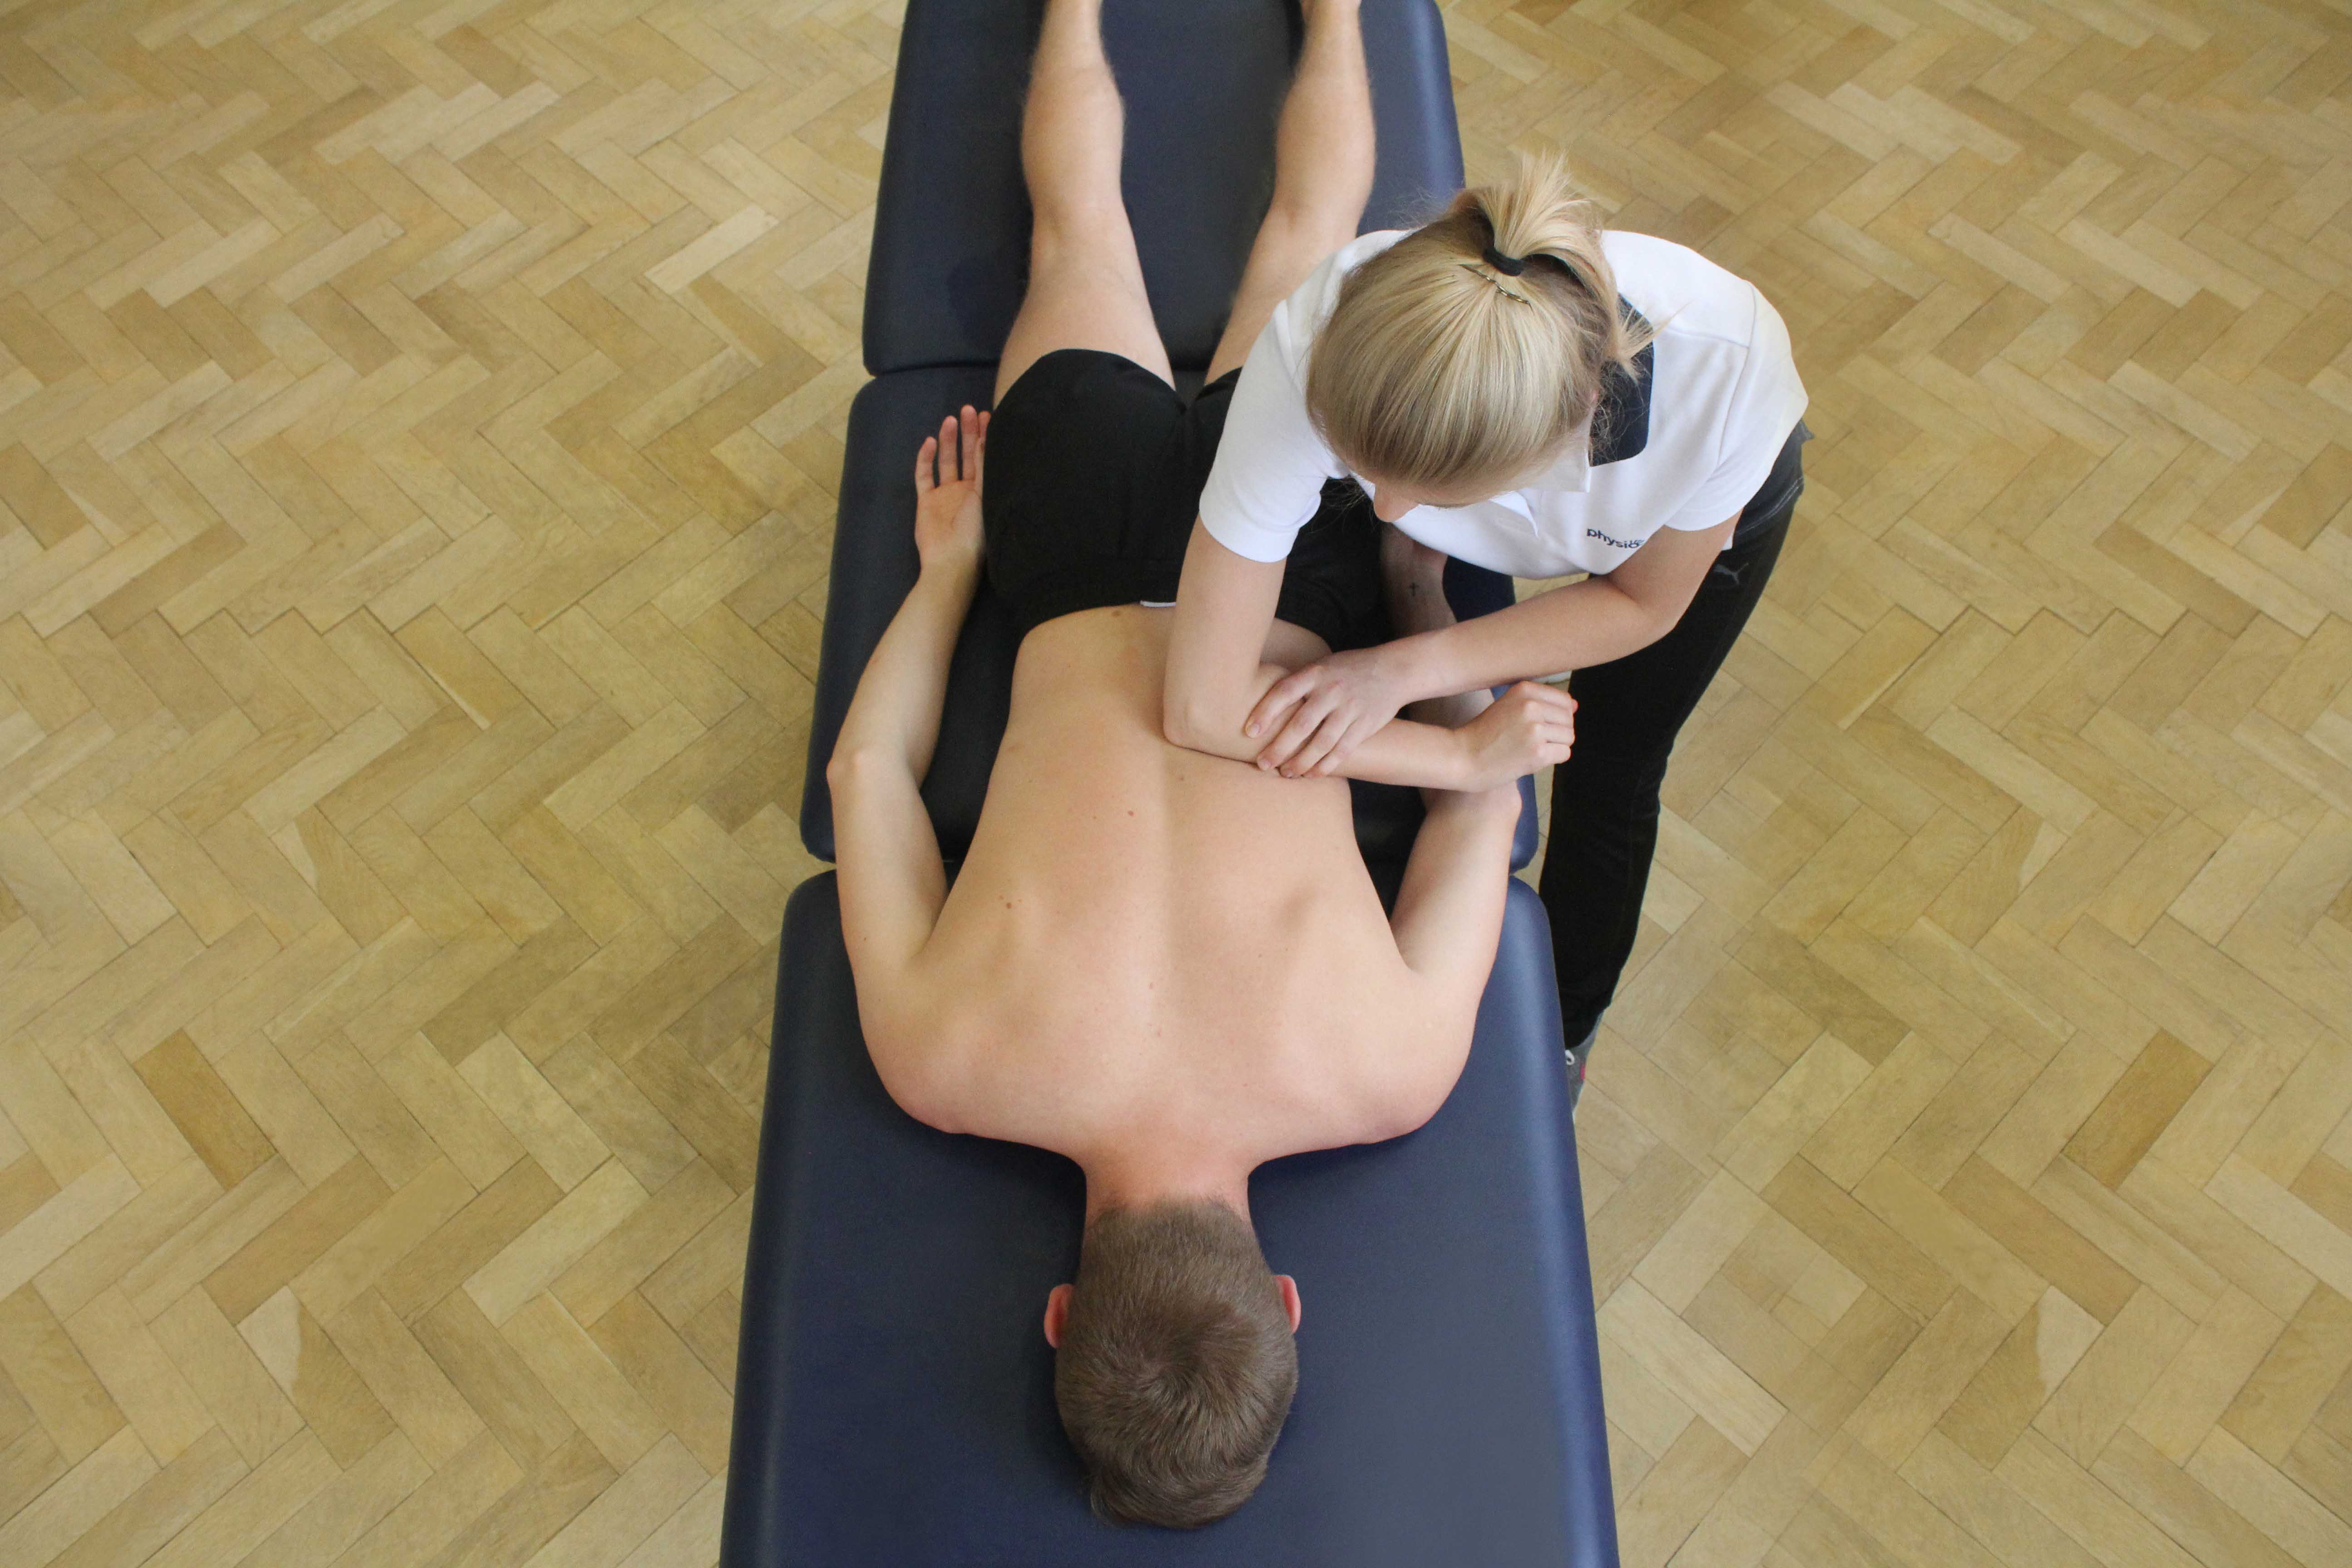 Deep tissue massage applied to the lower latissimus dorsi muscle